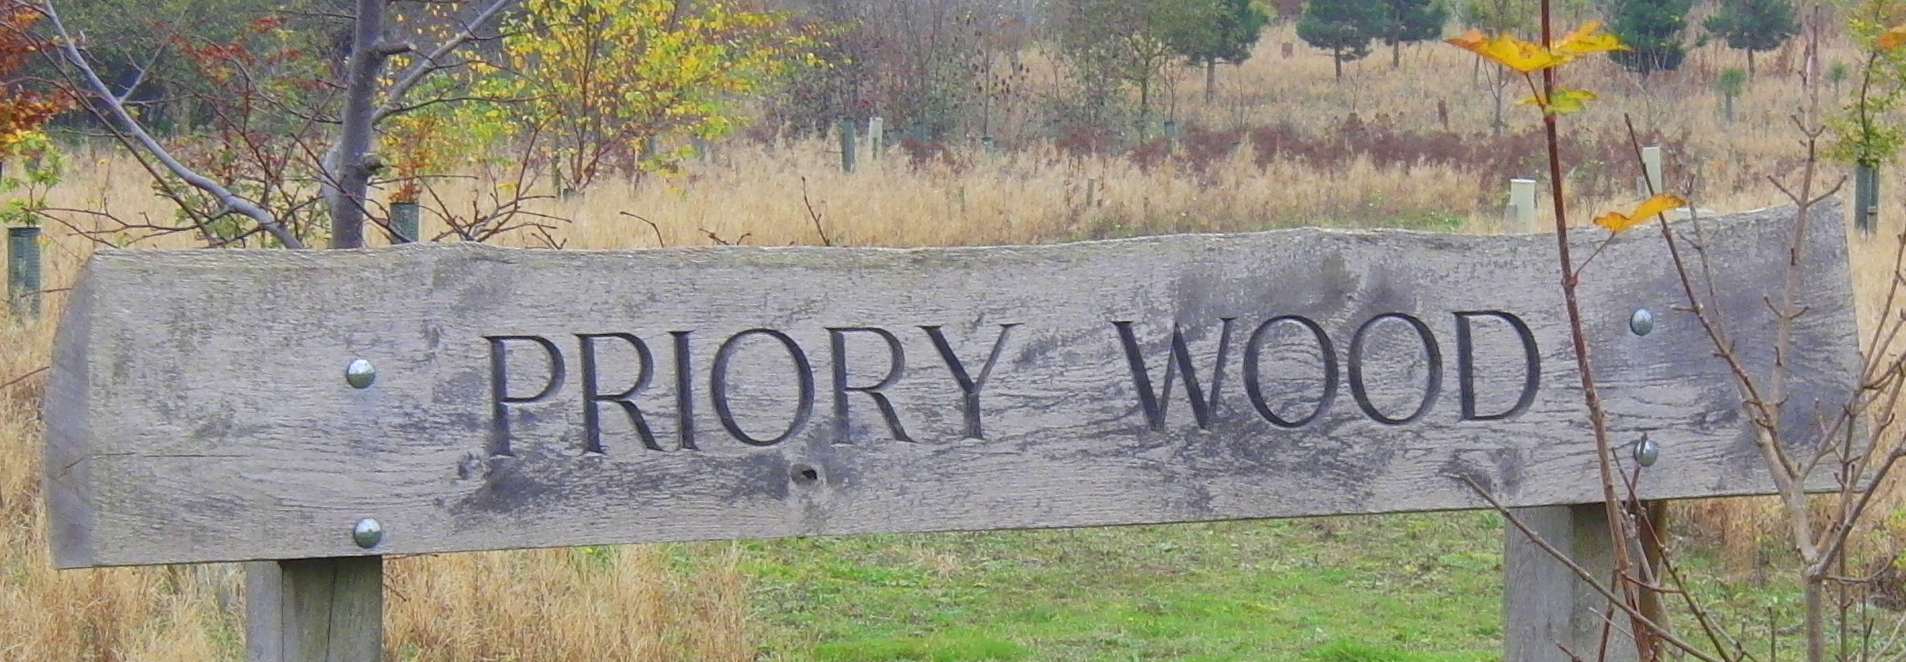 141111 CIMG1230 Priory Wood